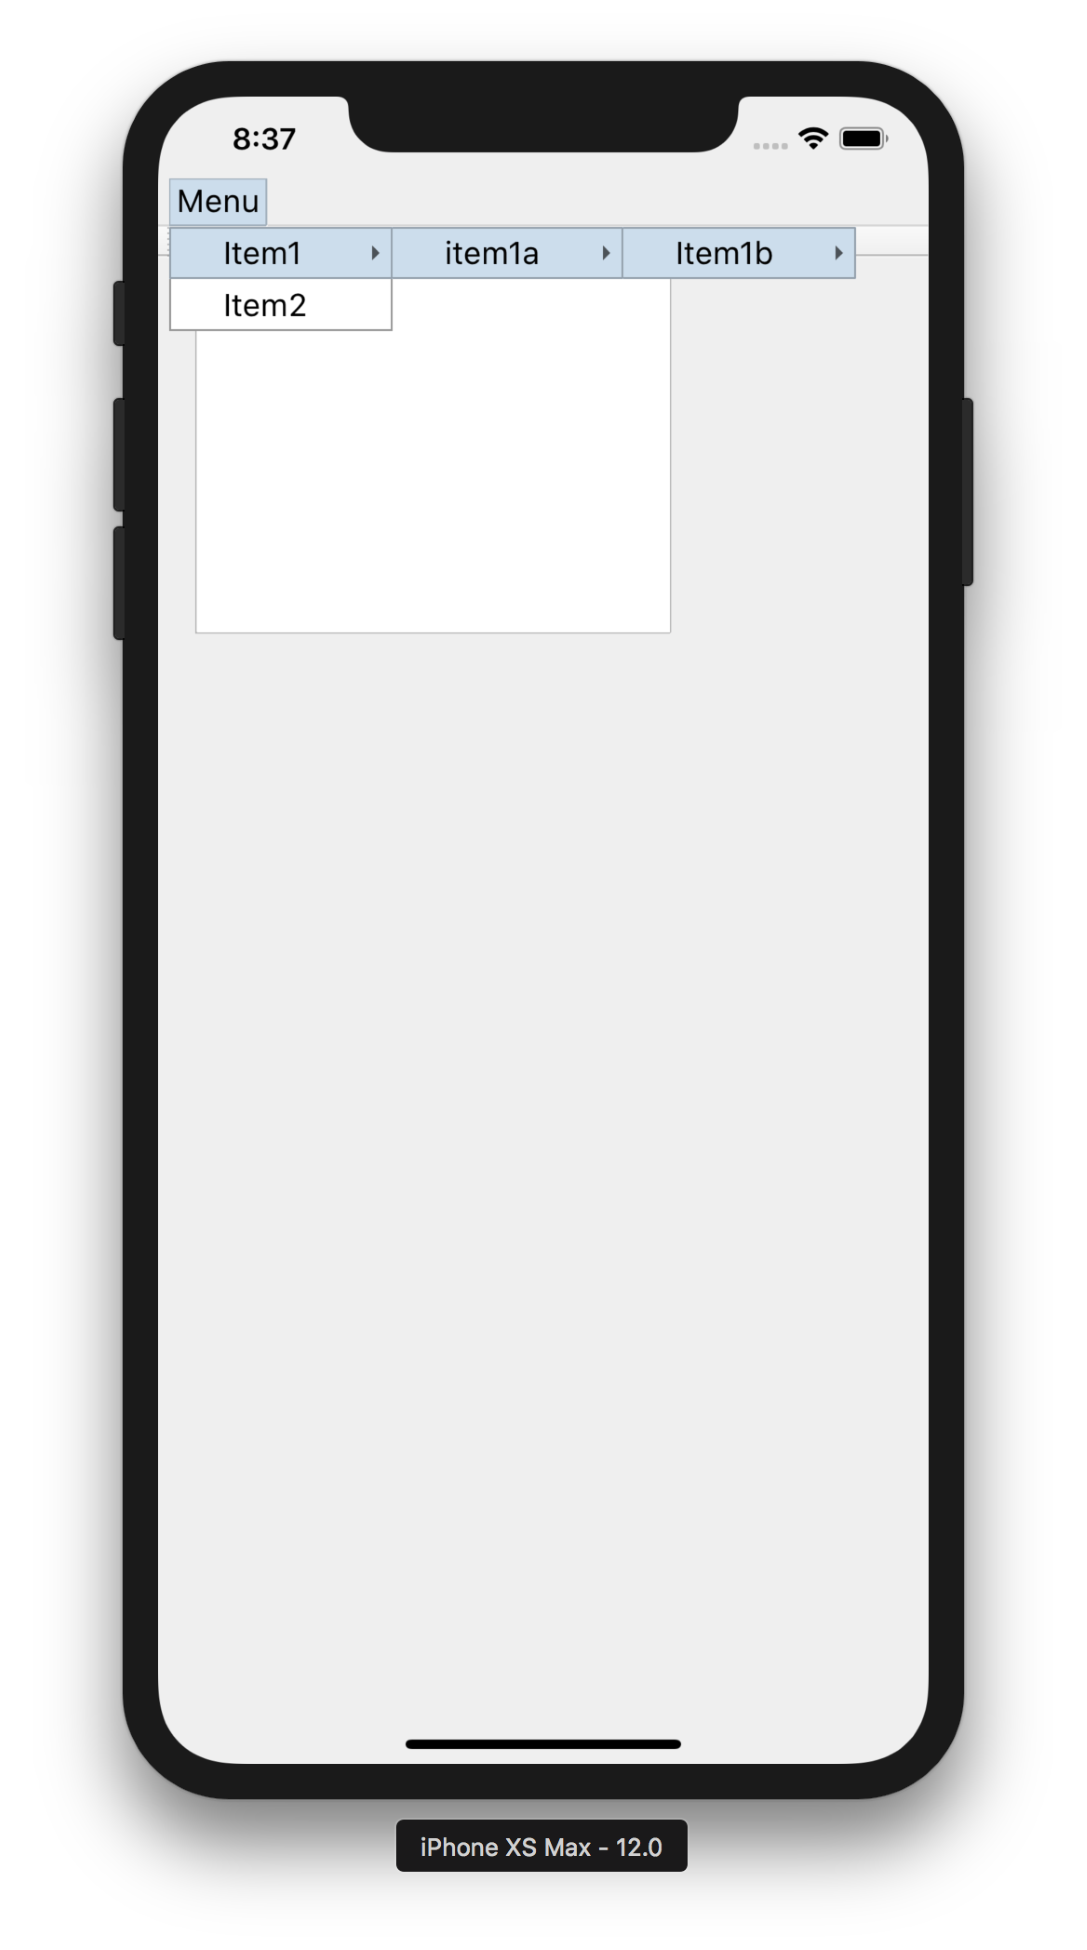 Going smaller, handling screen sizes - Hands-On Mobile and